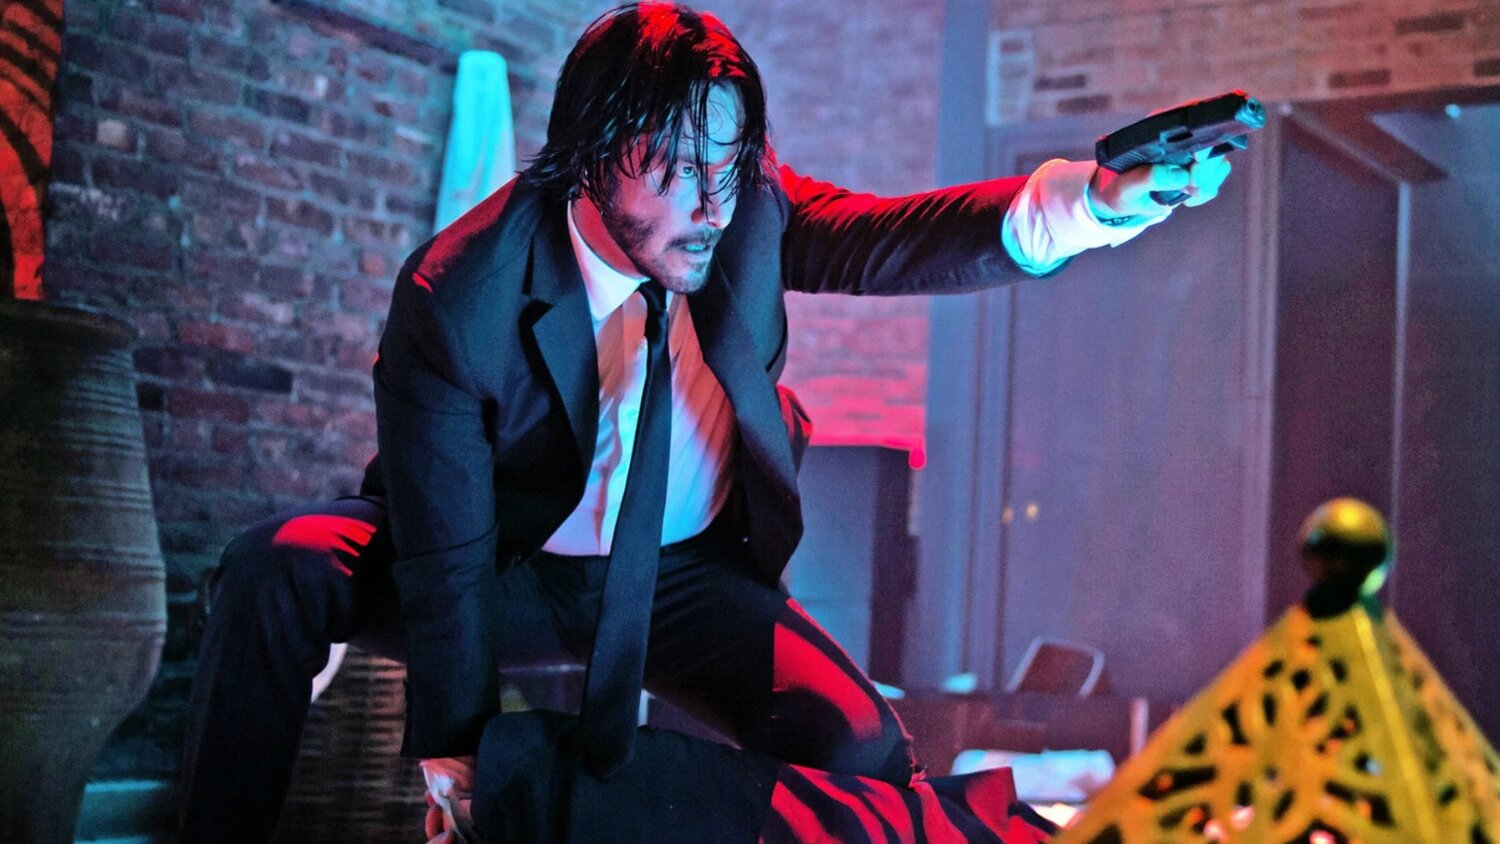 The Director of JOHN WICK 3 Explains Why Winston Ended Up Shooting Wick at The End of The Film